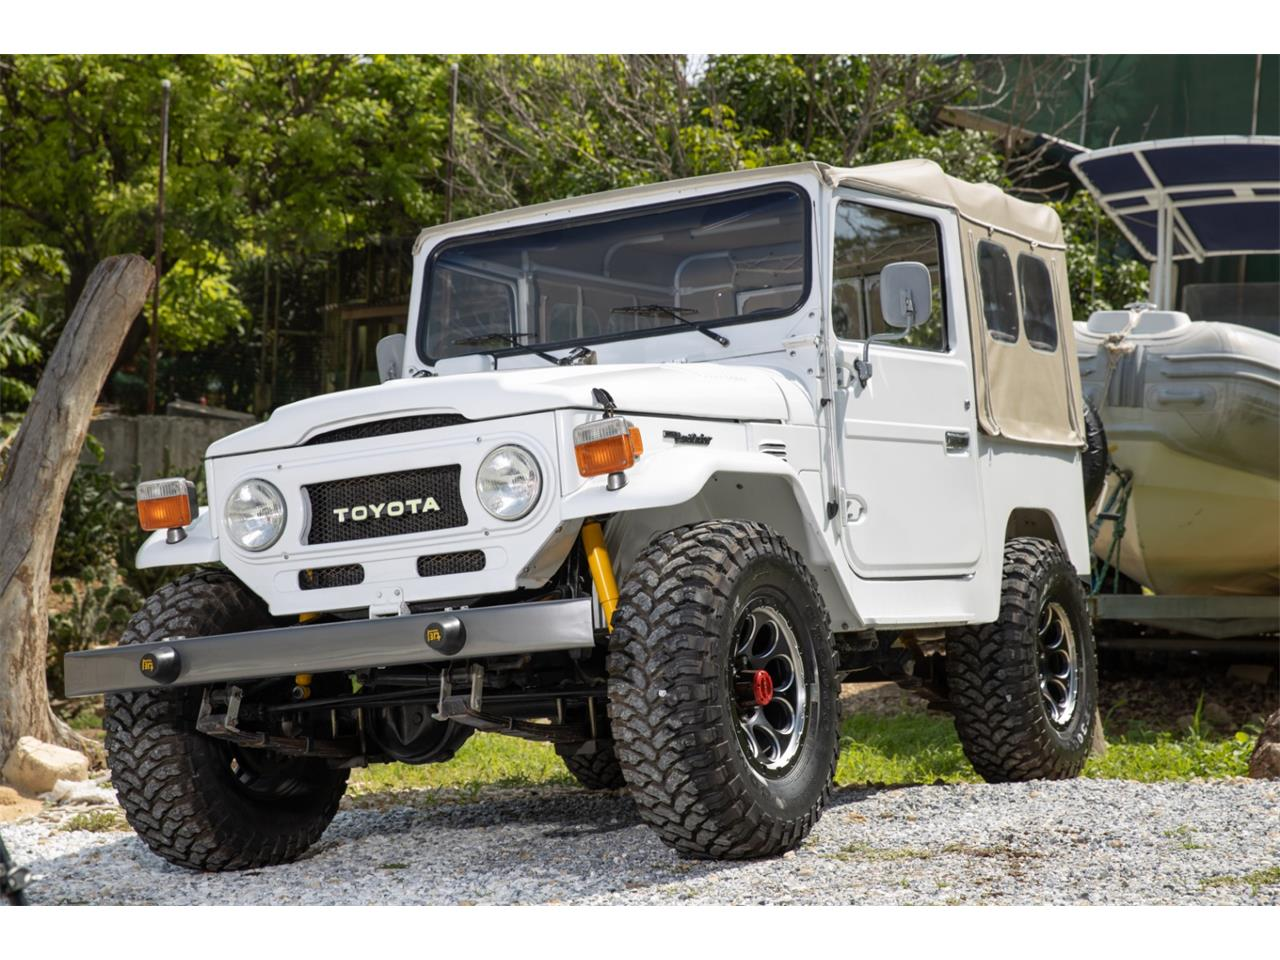 Large Picture of 1977 Toyota Land Cruiser FJ40 Offered by a Private Seller - QHFH